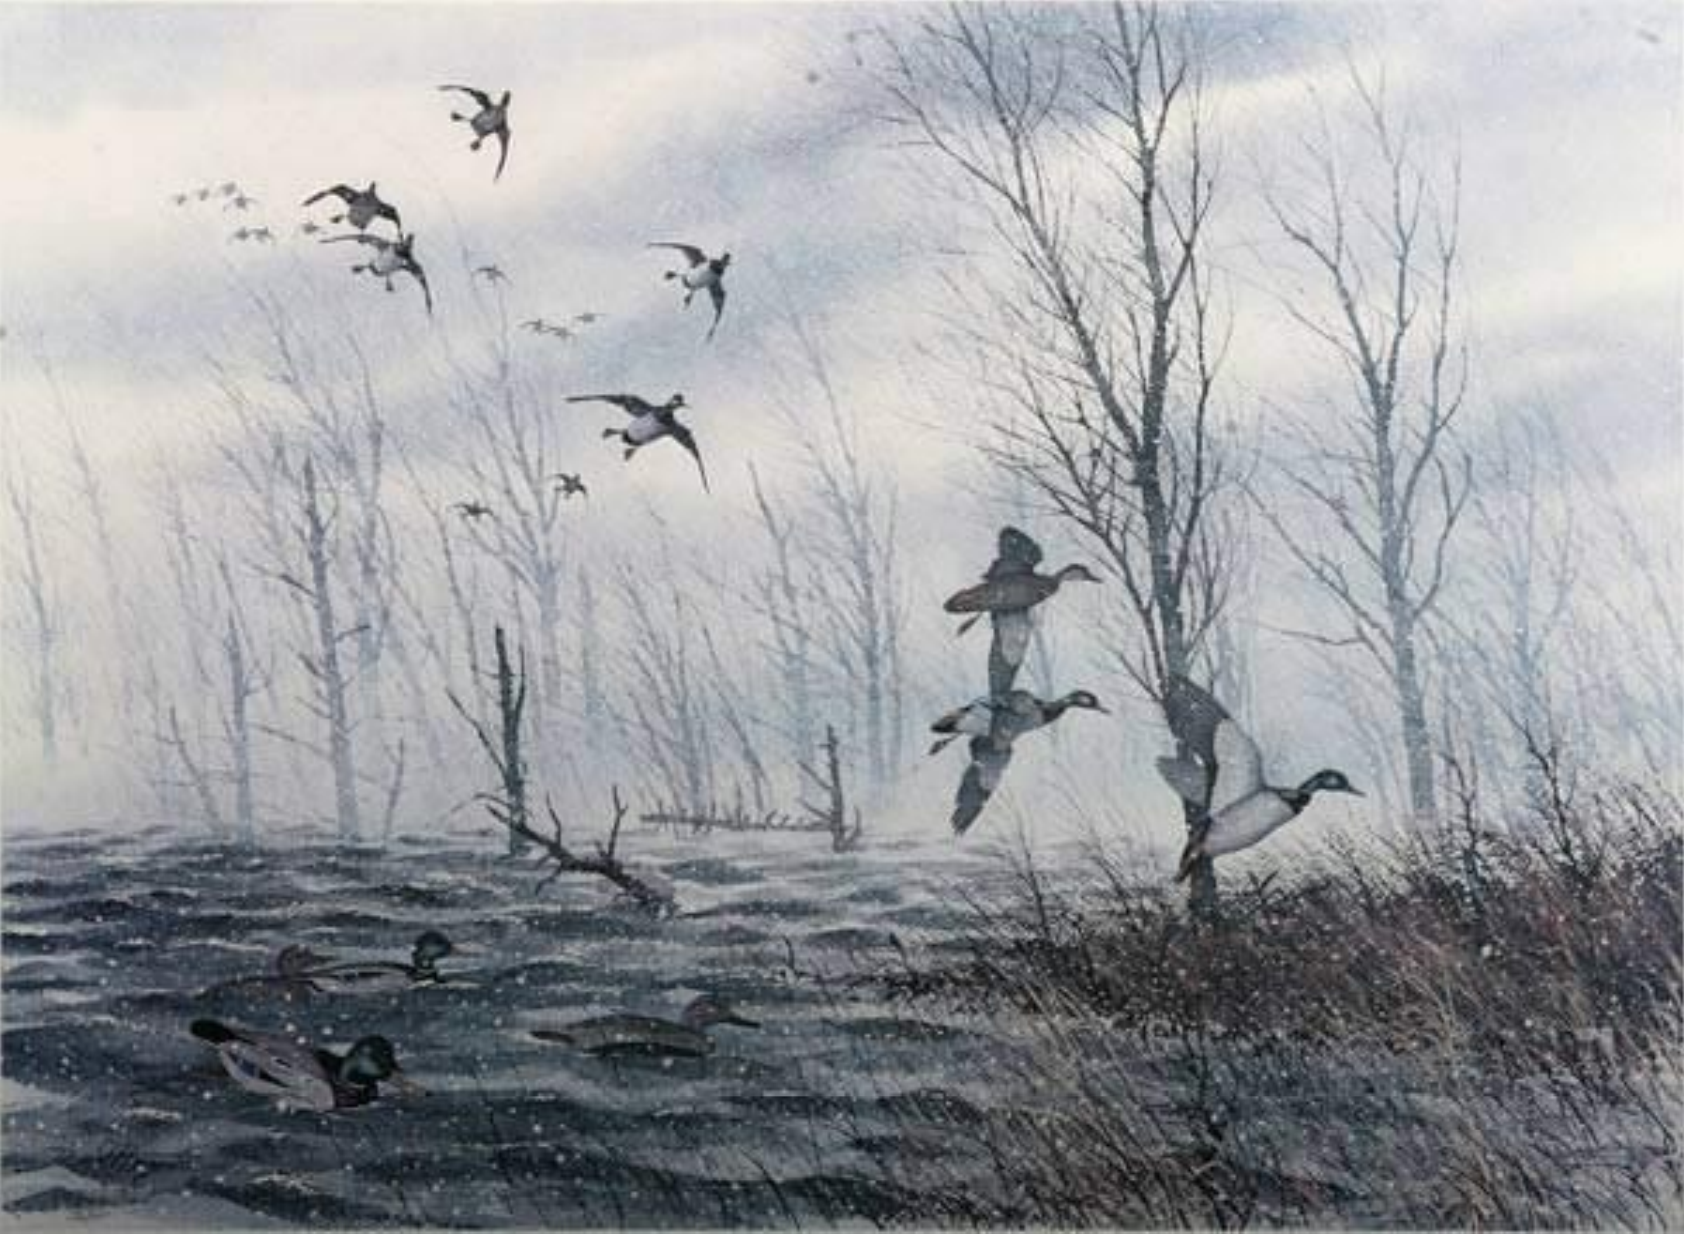 painting of a winter scene with ducks by David Hagerbaumer